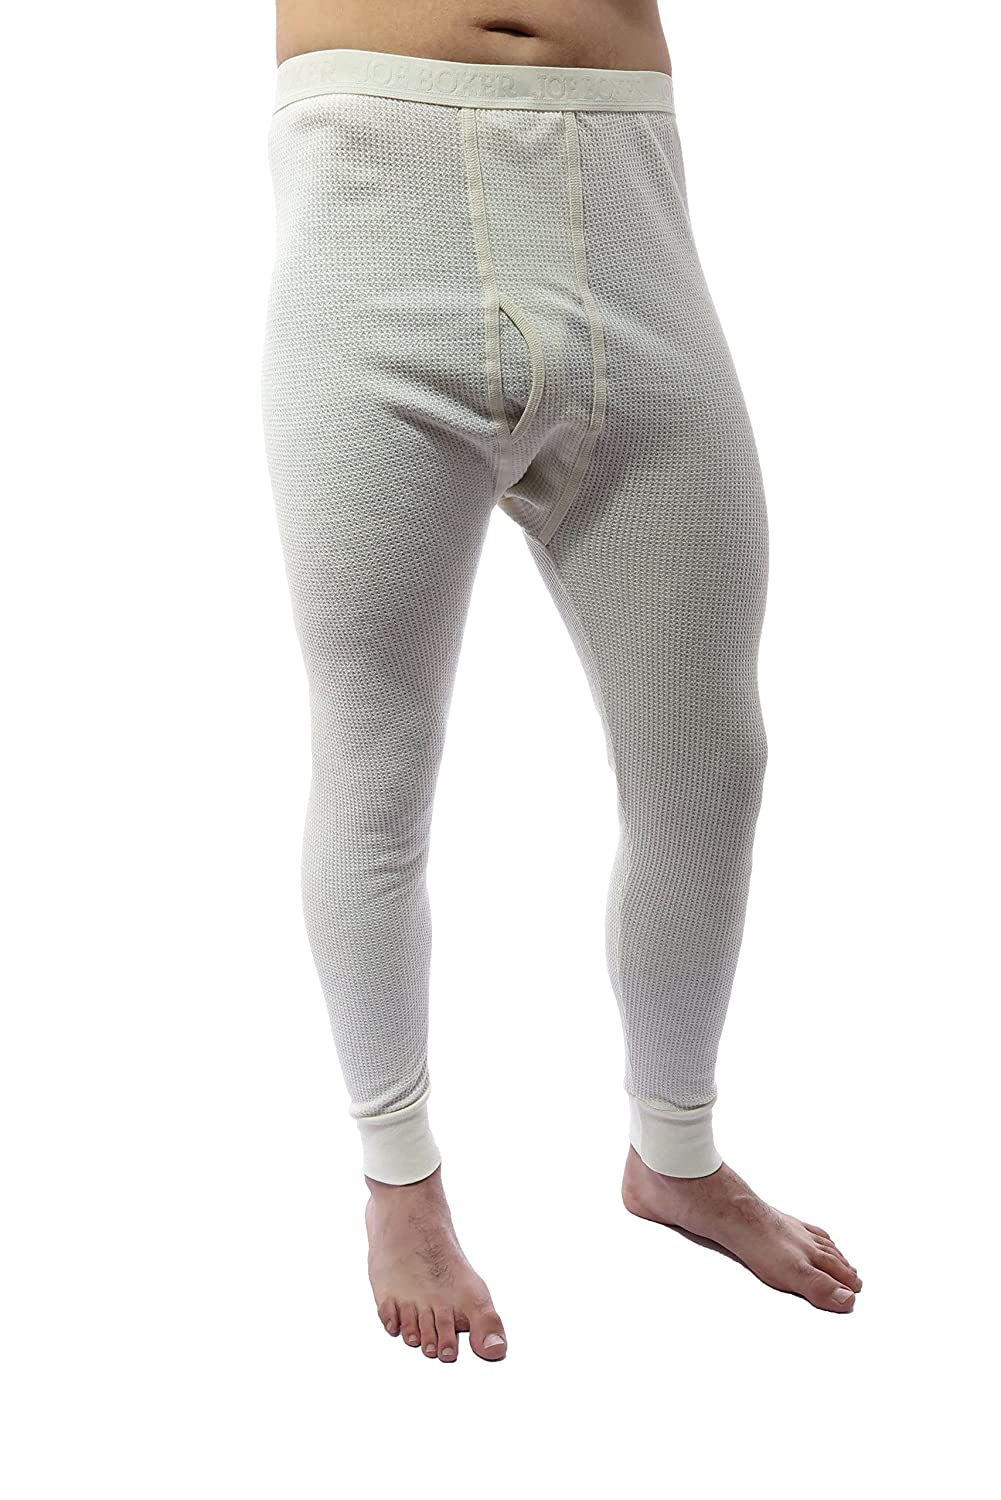 Joe Boxer Mens Thermal Bottoms